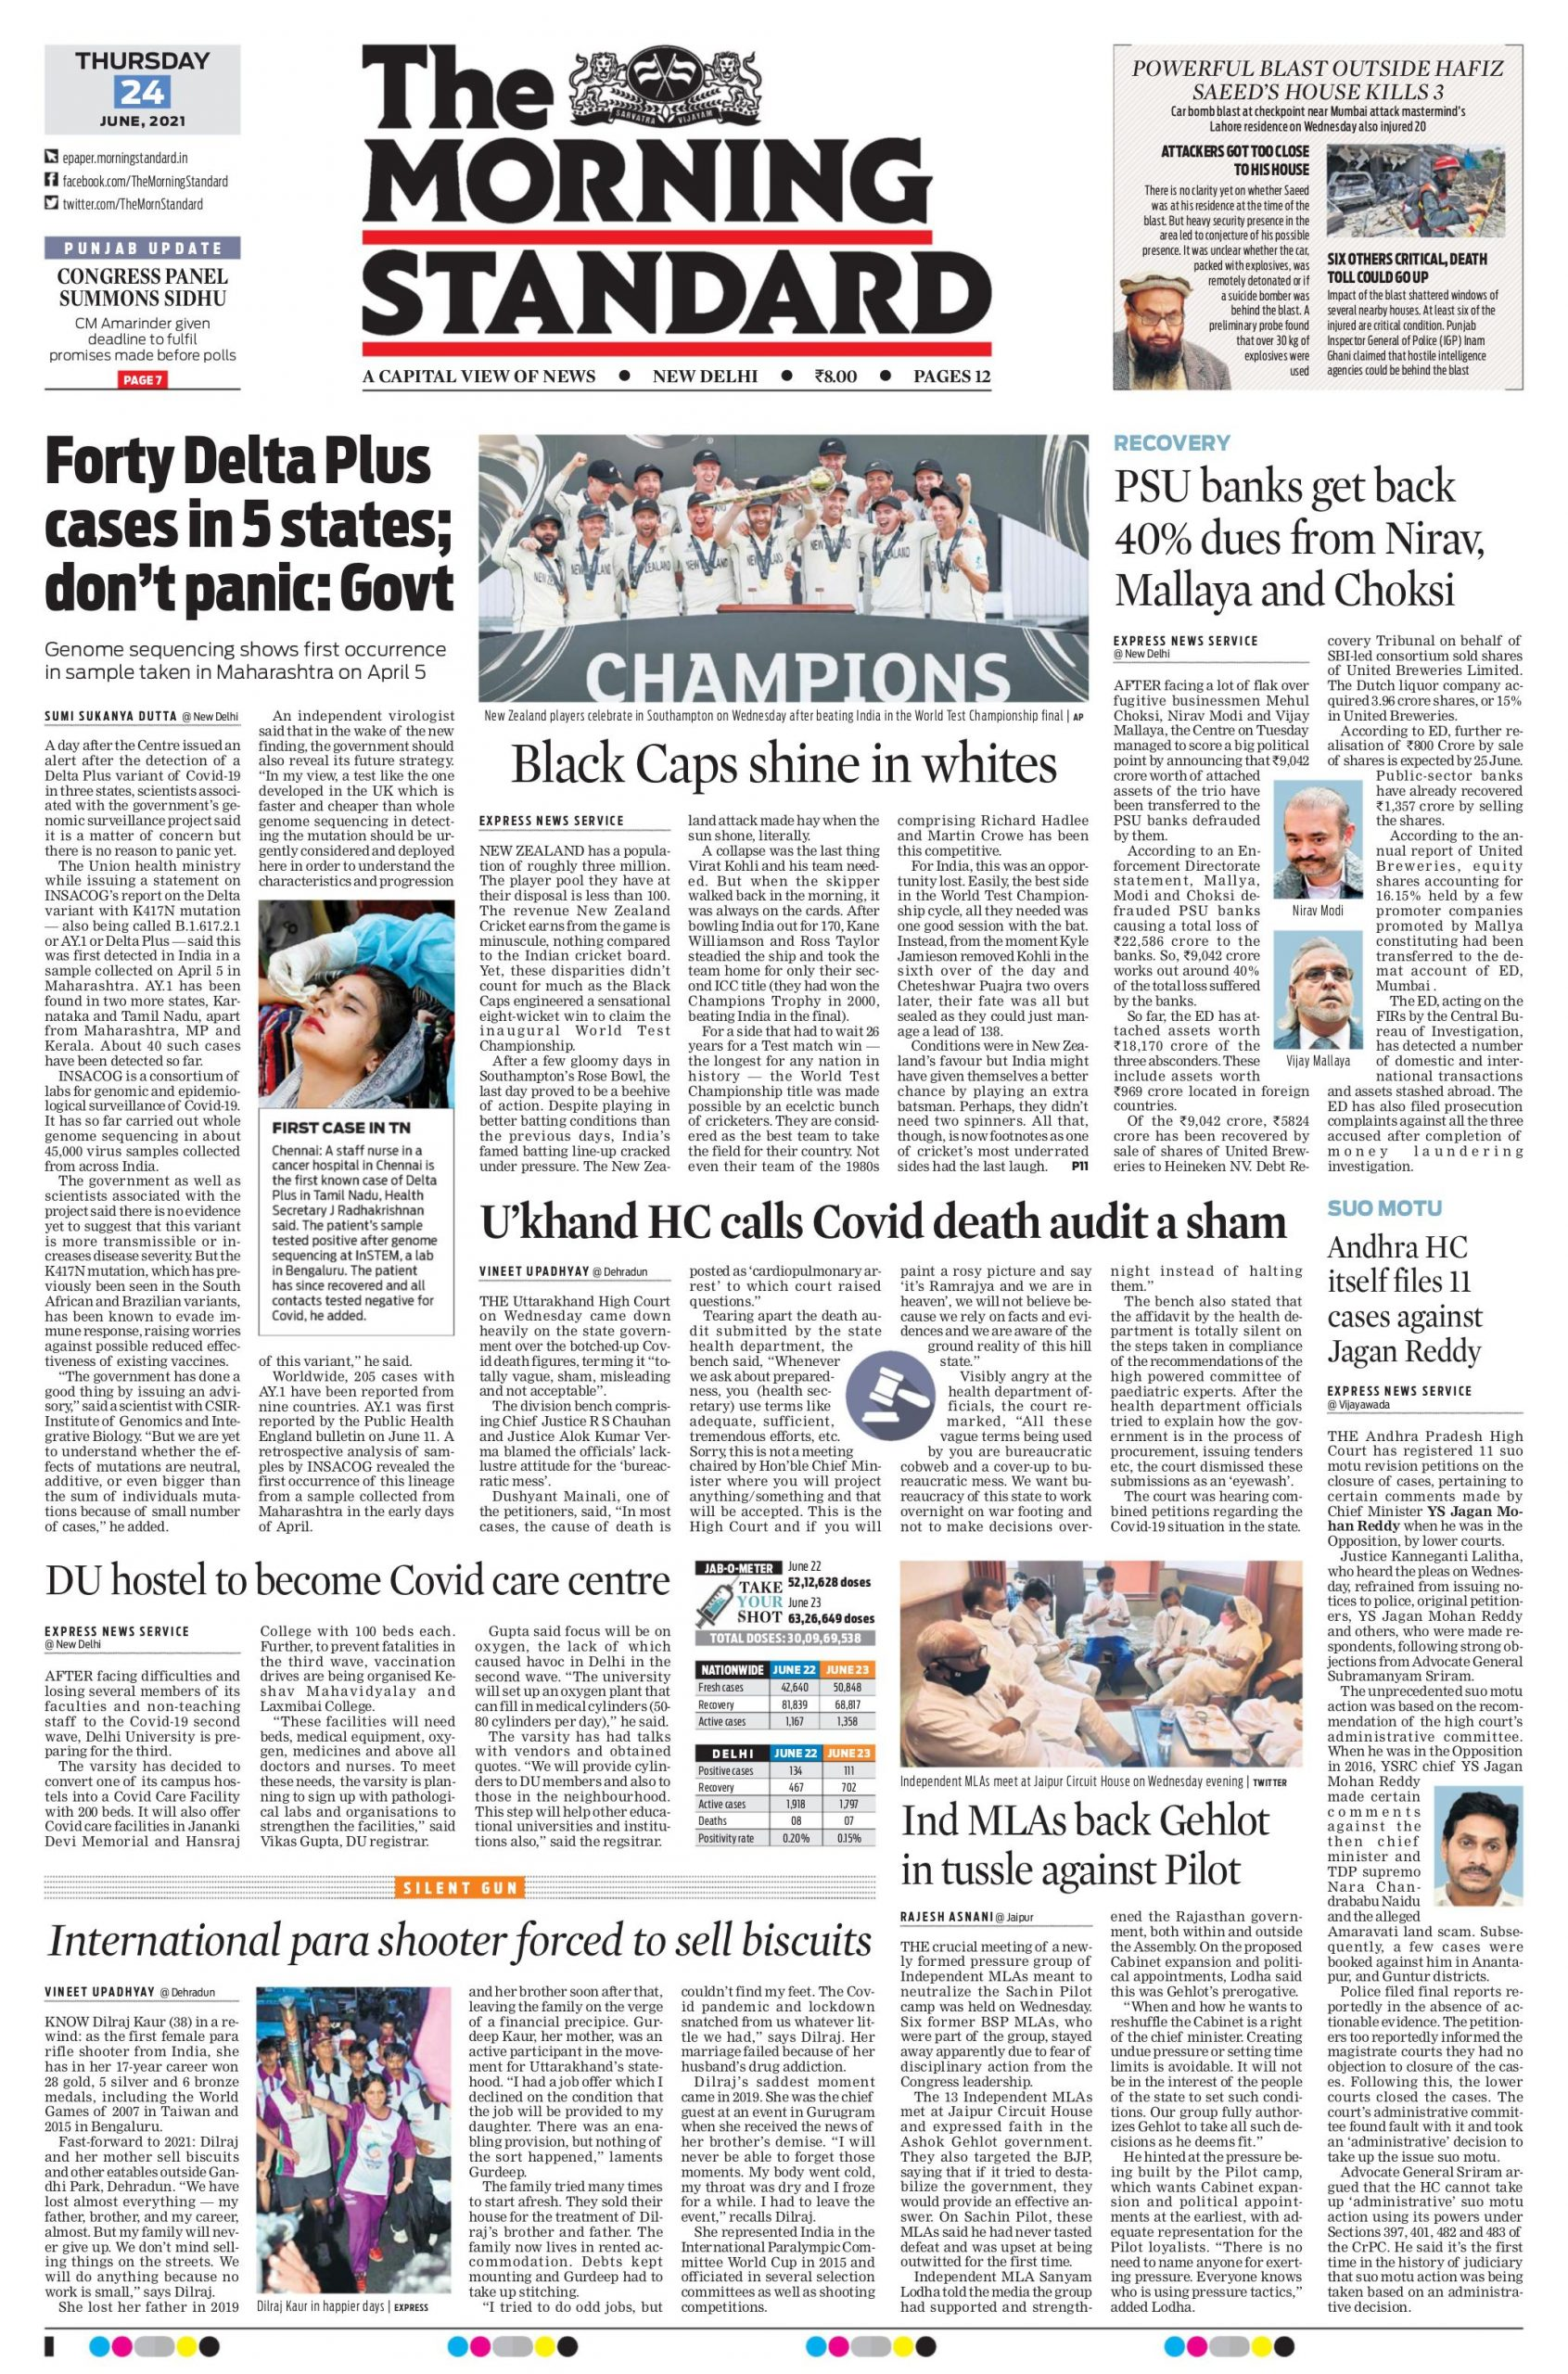 The Morning Standard 24th June 2021